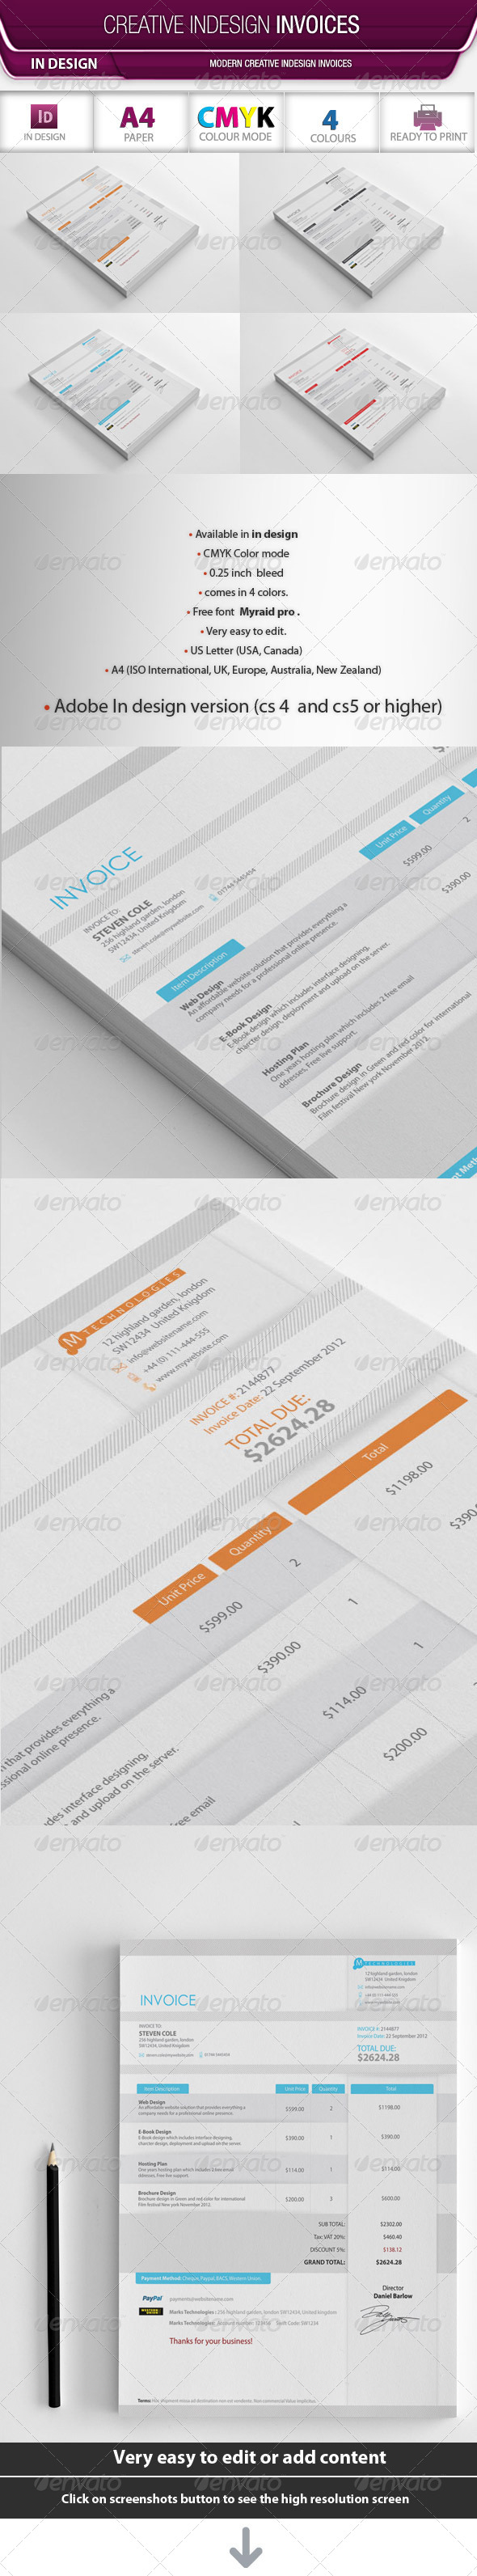 Creative Indesign Invoices - Proposals & Invoices Stationery